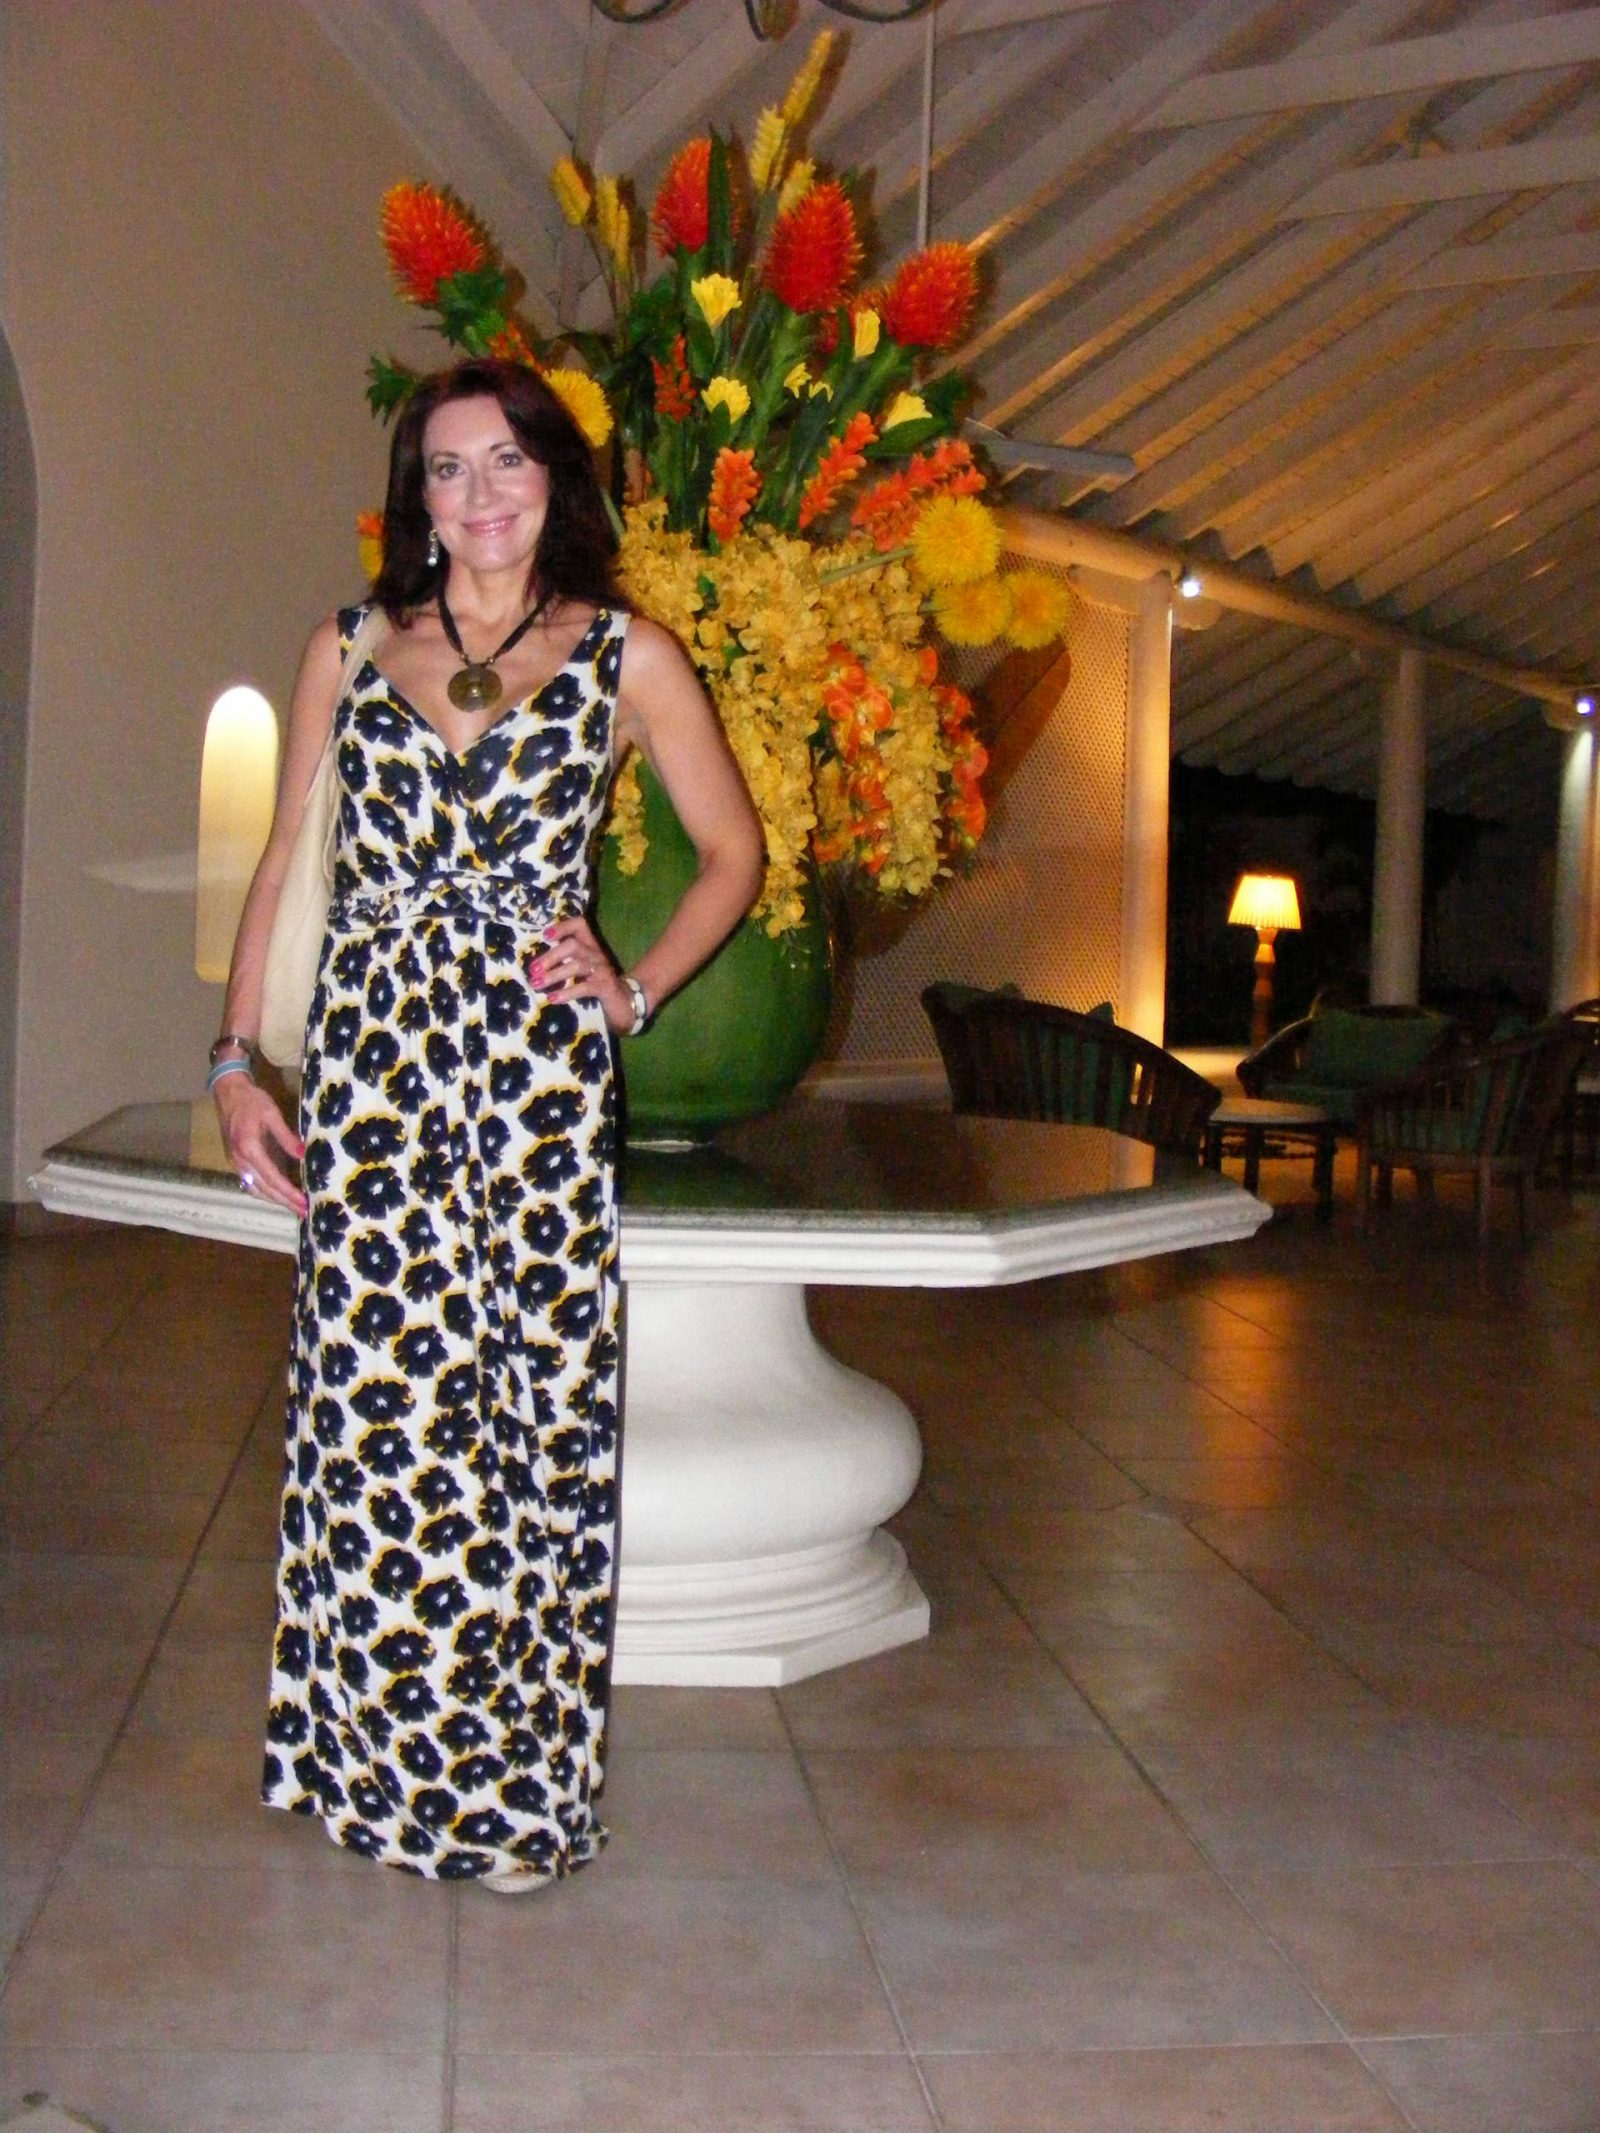 Barbados Holiday Maxi Dresses, Dickins and Jones maxi dress